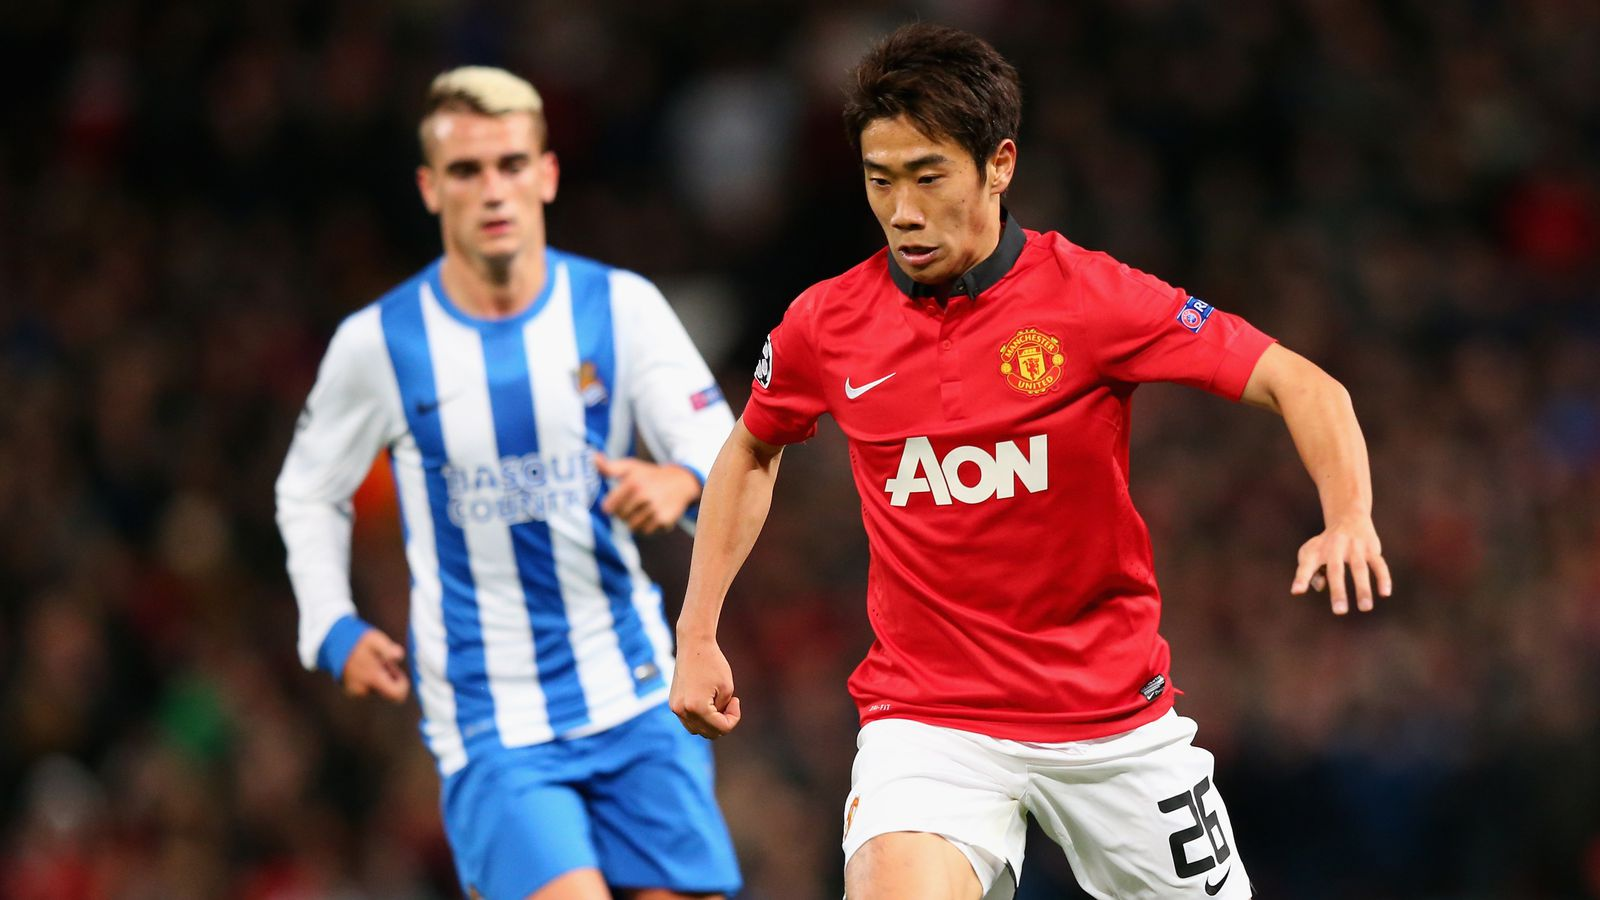 Real sociedad vs man utd betting tips chopmarked trade dollars for bitcoins